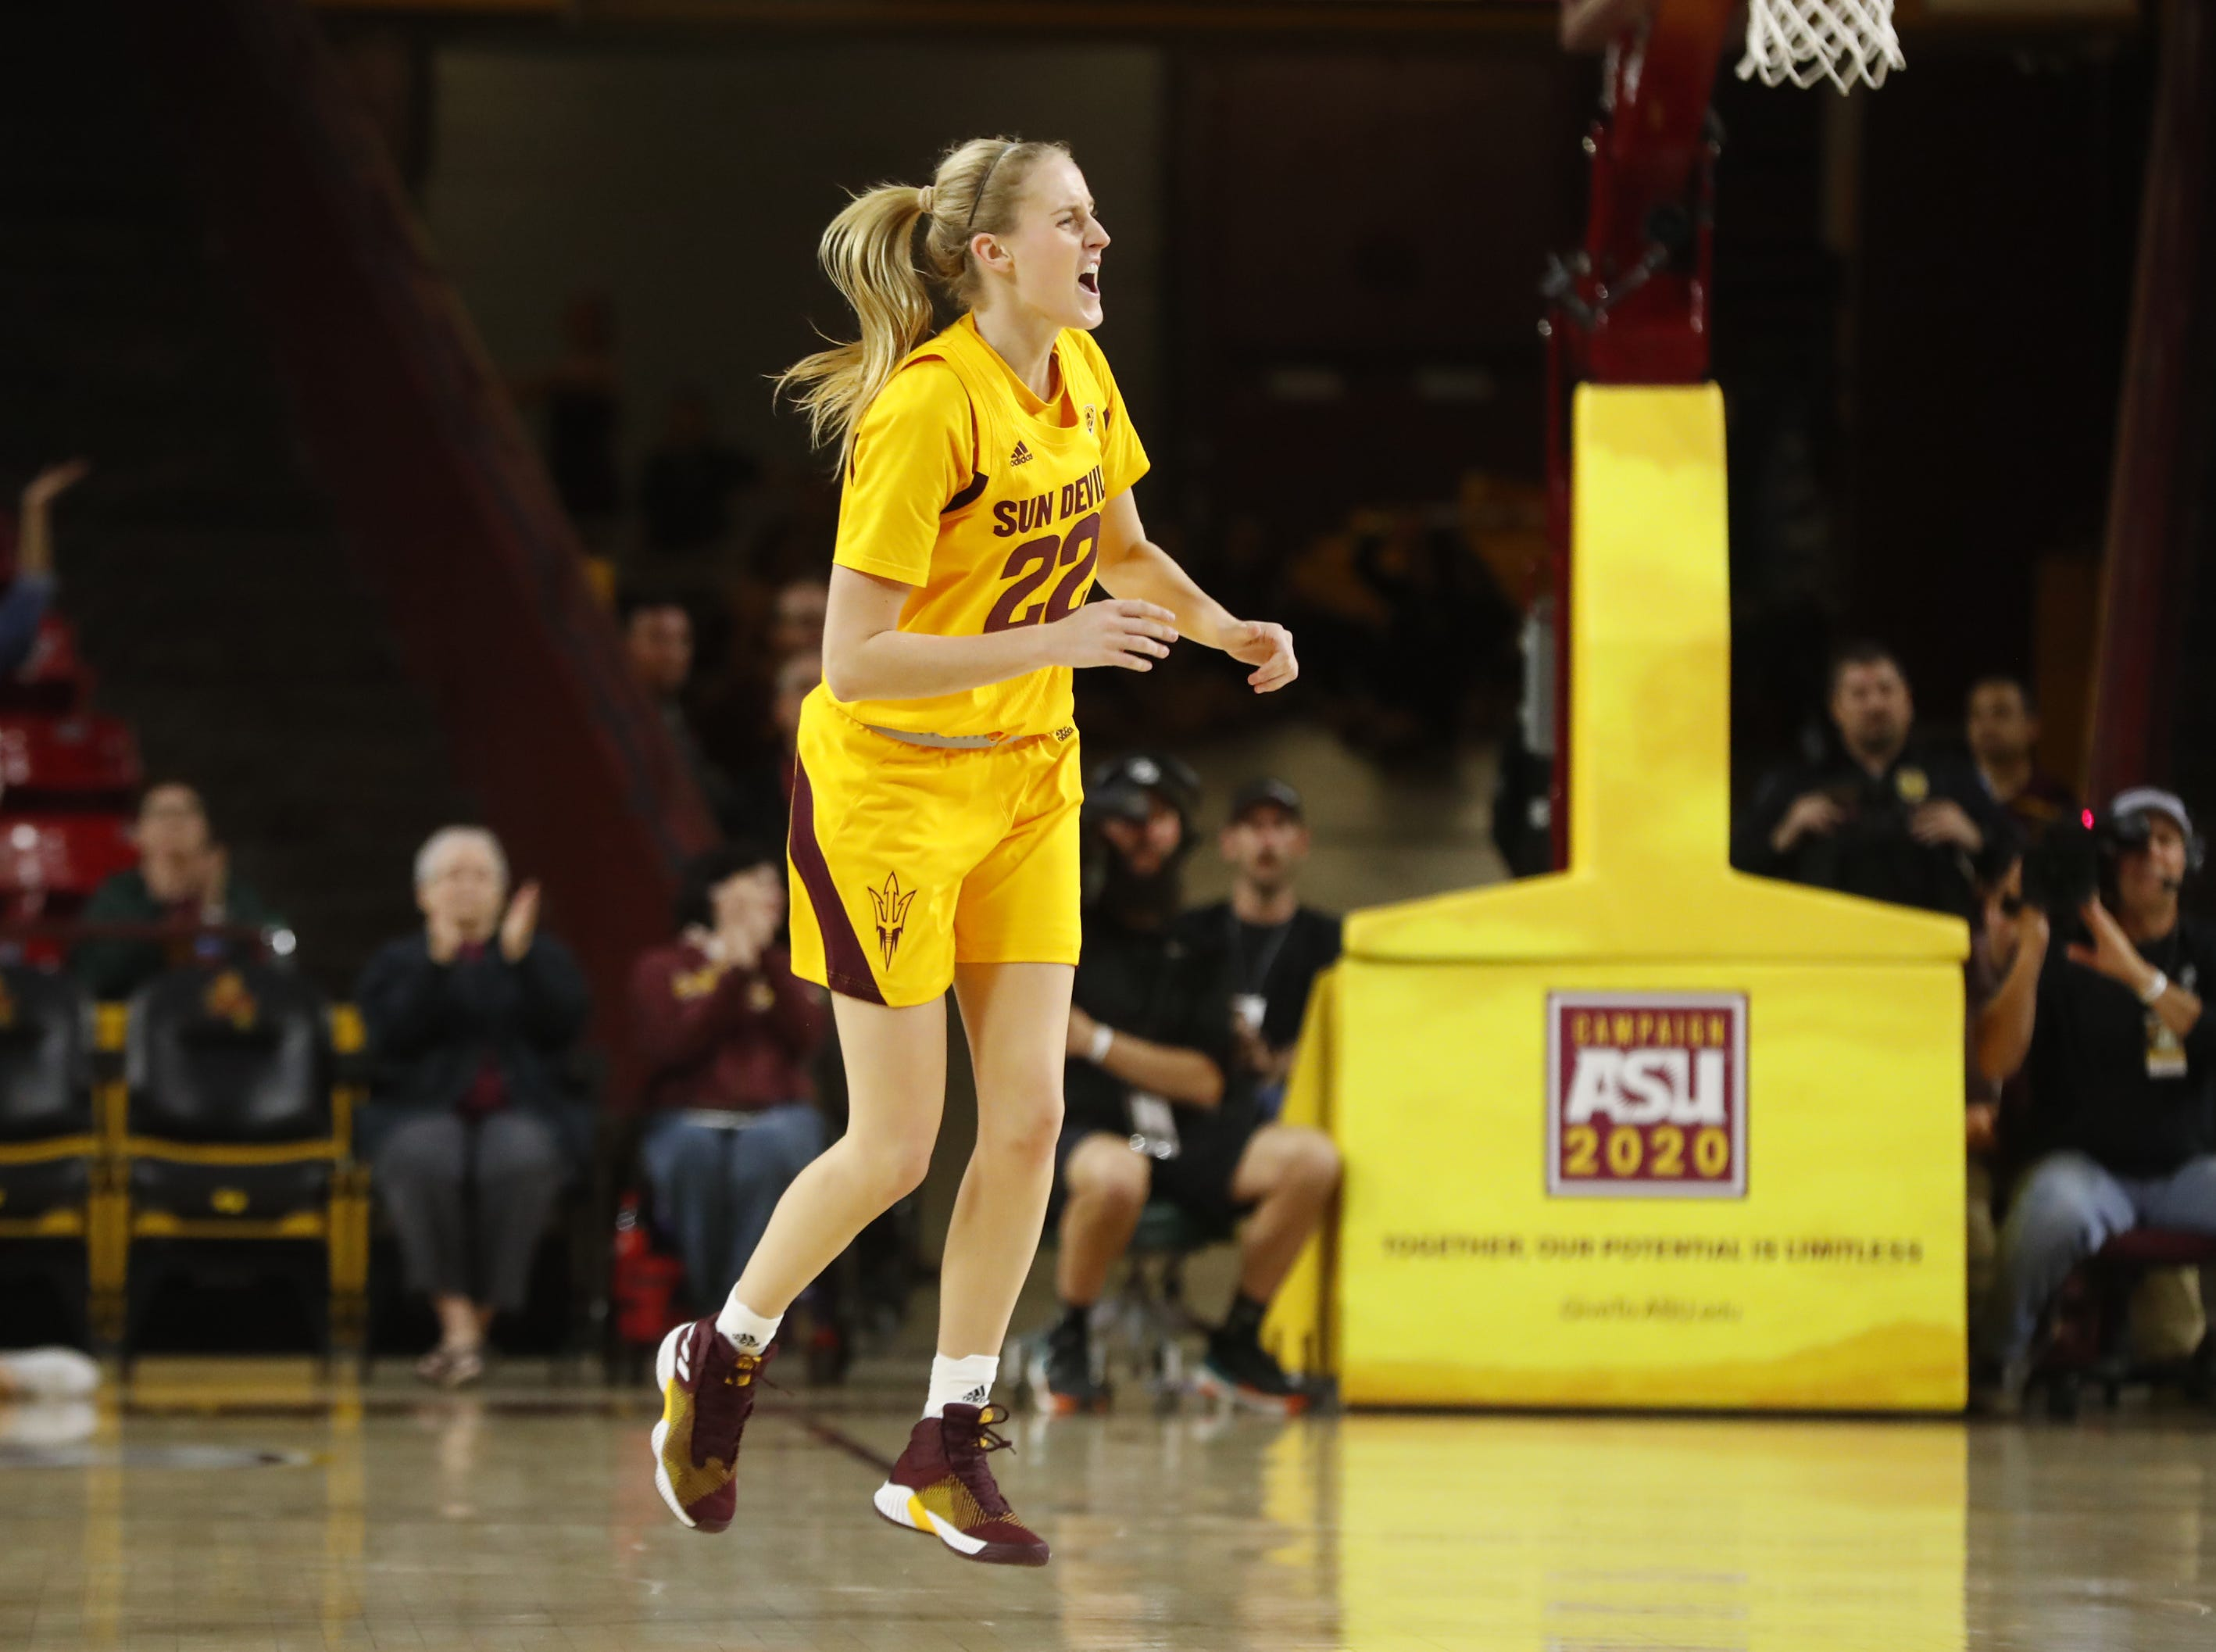 ASU's Courtney Ekmark (22) celebrates after scoring against Arizona during the first half at Wells Fargo Arena in Tempe, Ariz. on February 1, 2019.